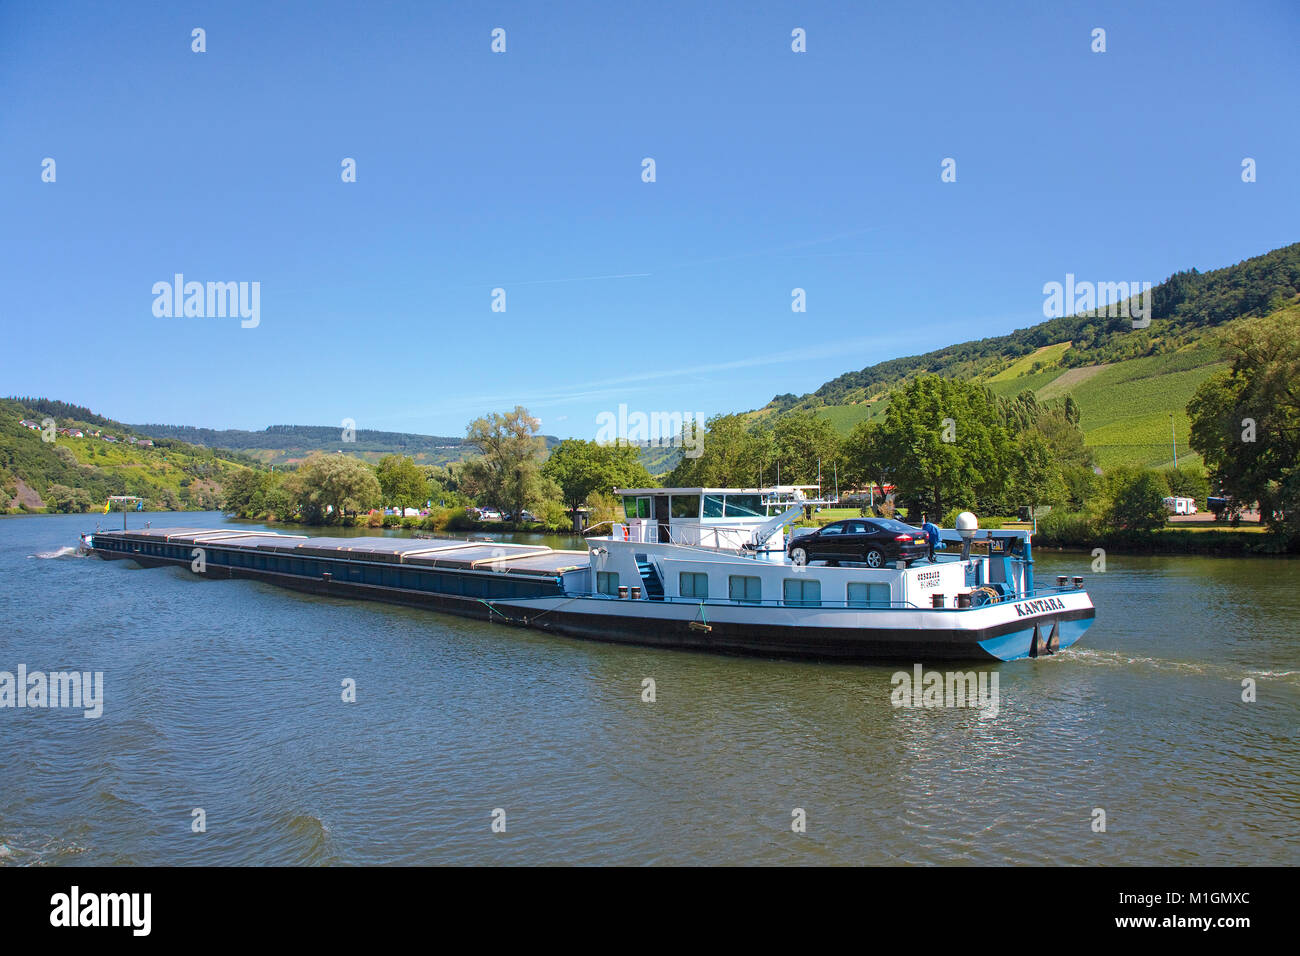 Freighter on Moselle river at Traben-Trarbach, Moselle river, Rhineland-Palatinate, Germany, Europe - Stock Image